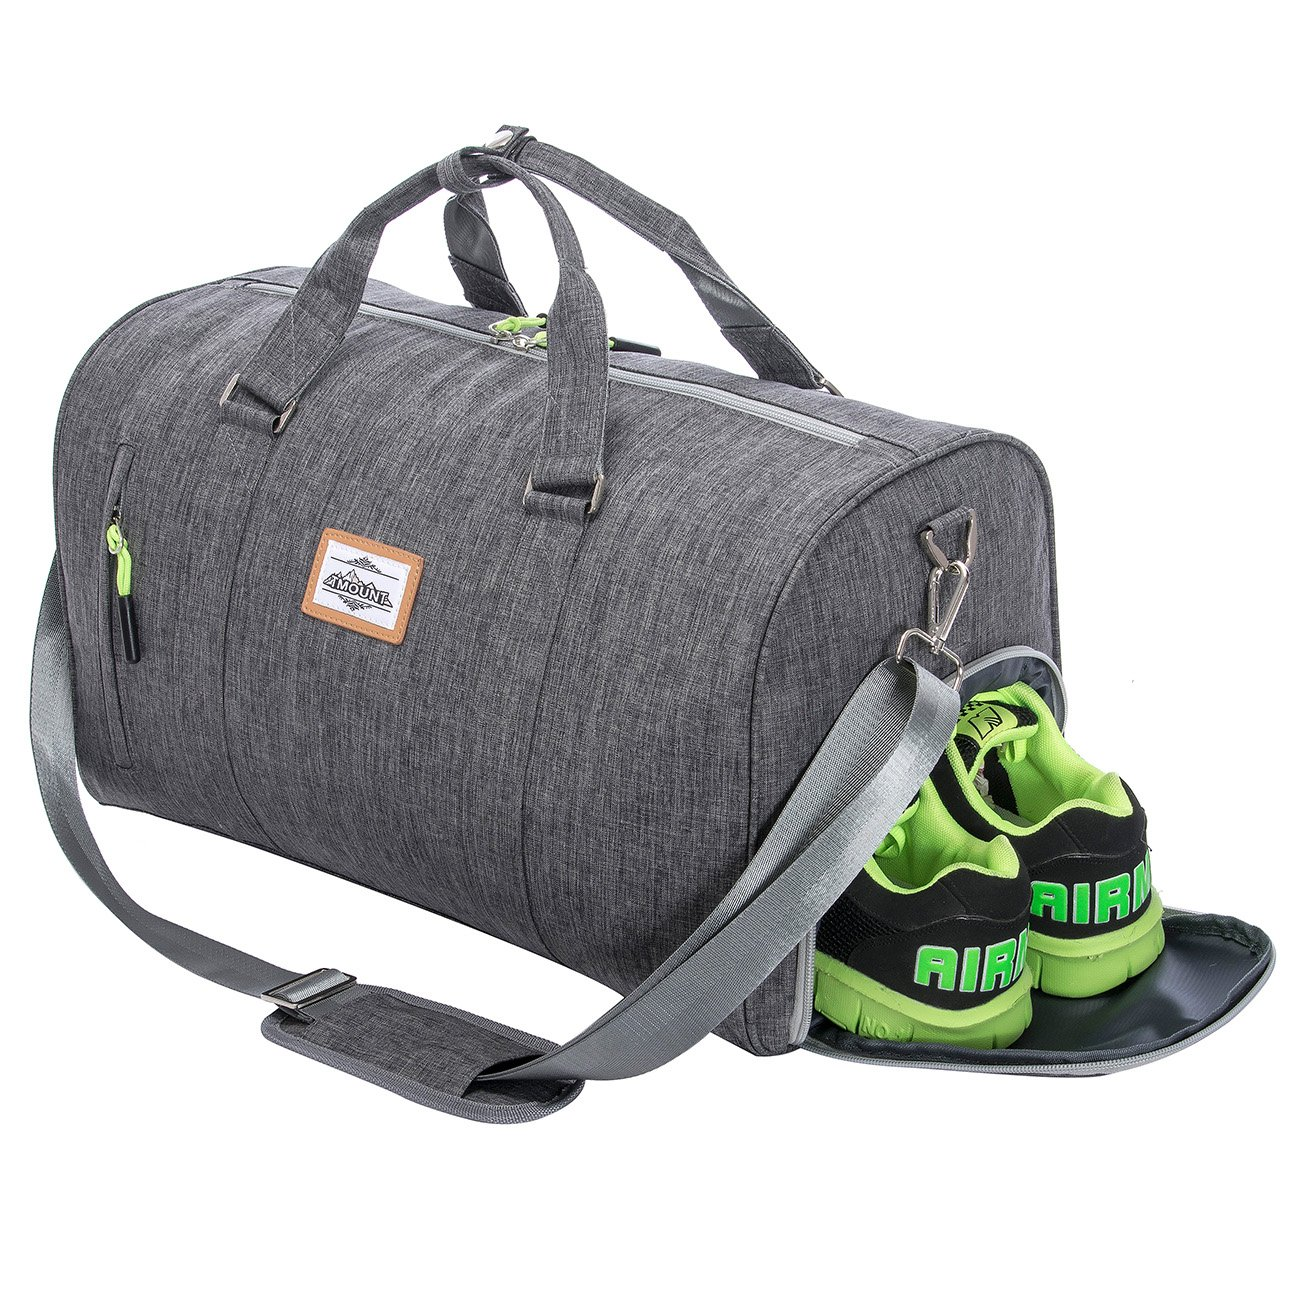 Duffle Bag Sports Gym Travel Luggage Including Shoes Compartment (Dark Gray)